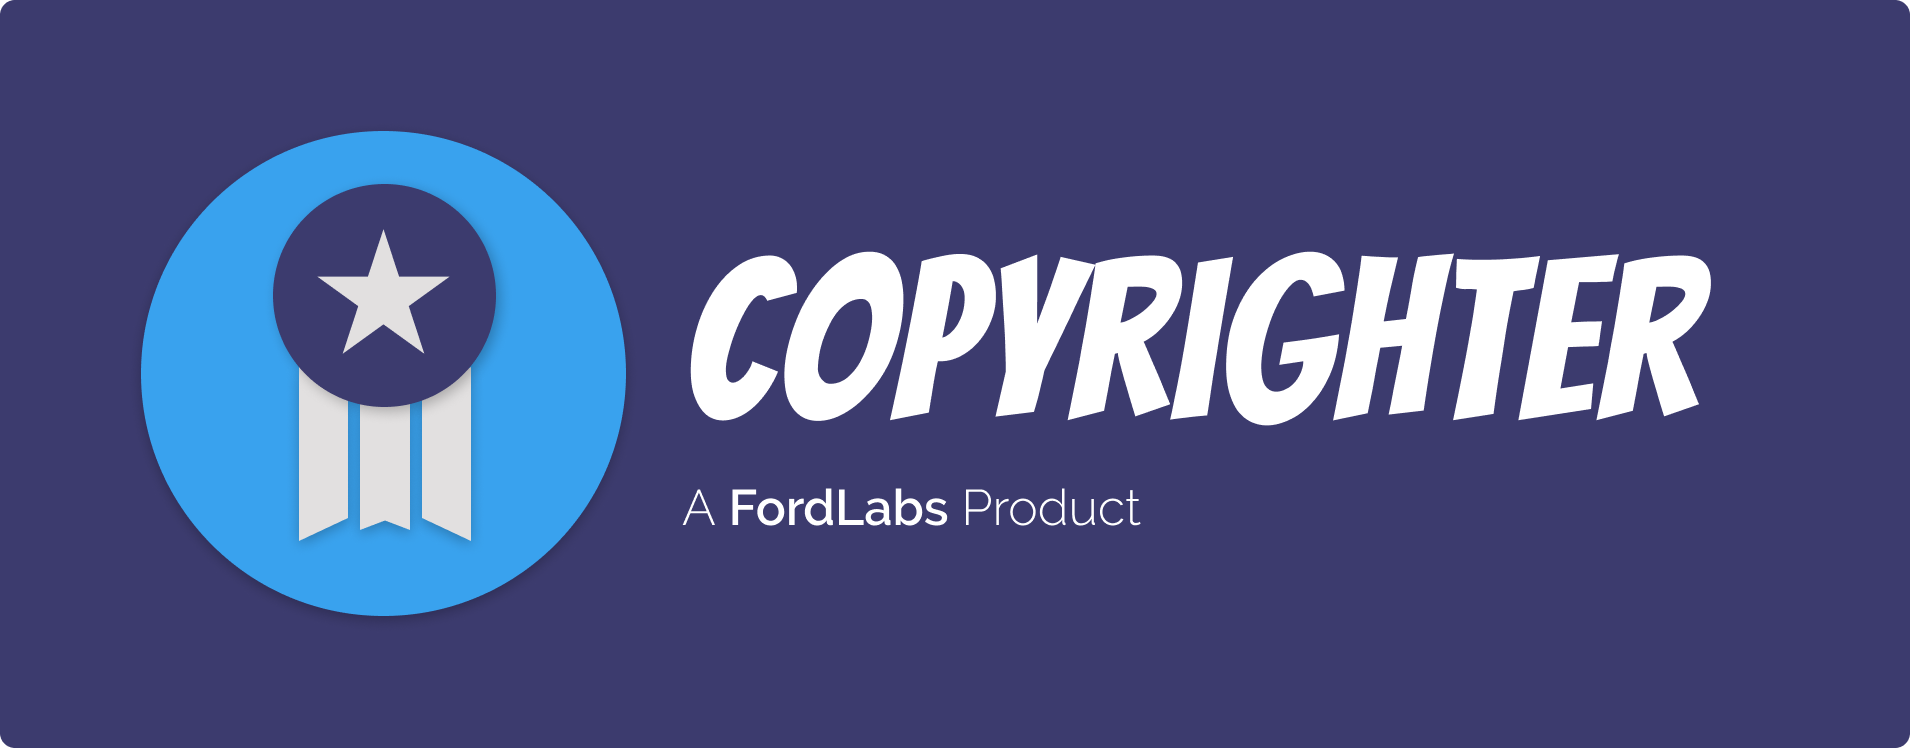 Writes your copyright so you don't have to